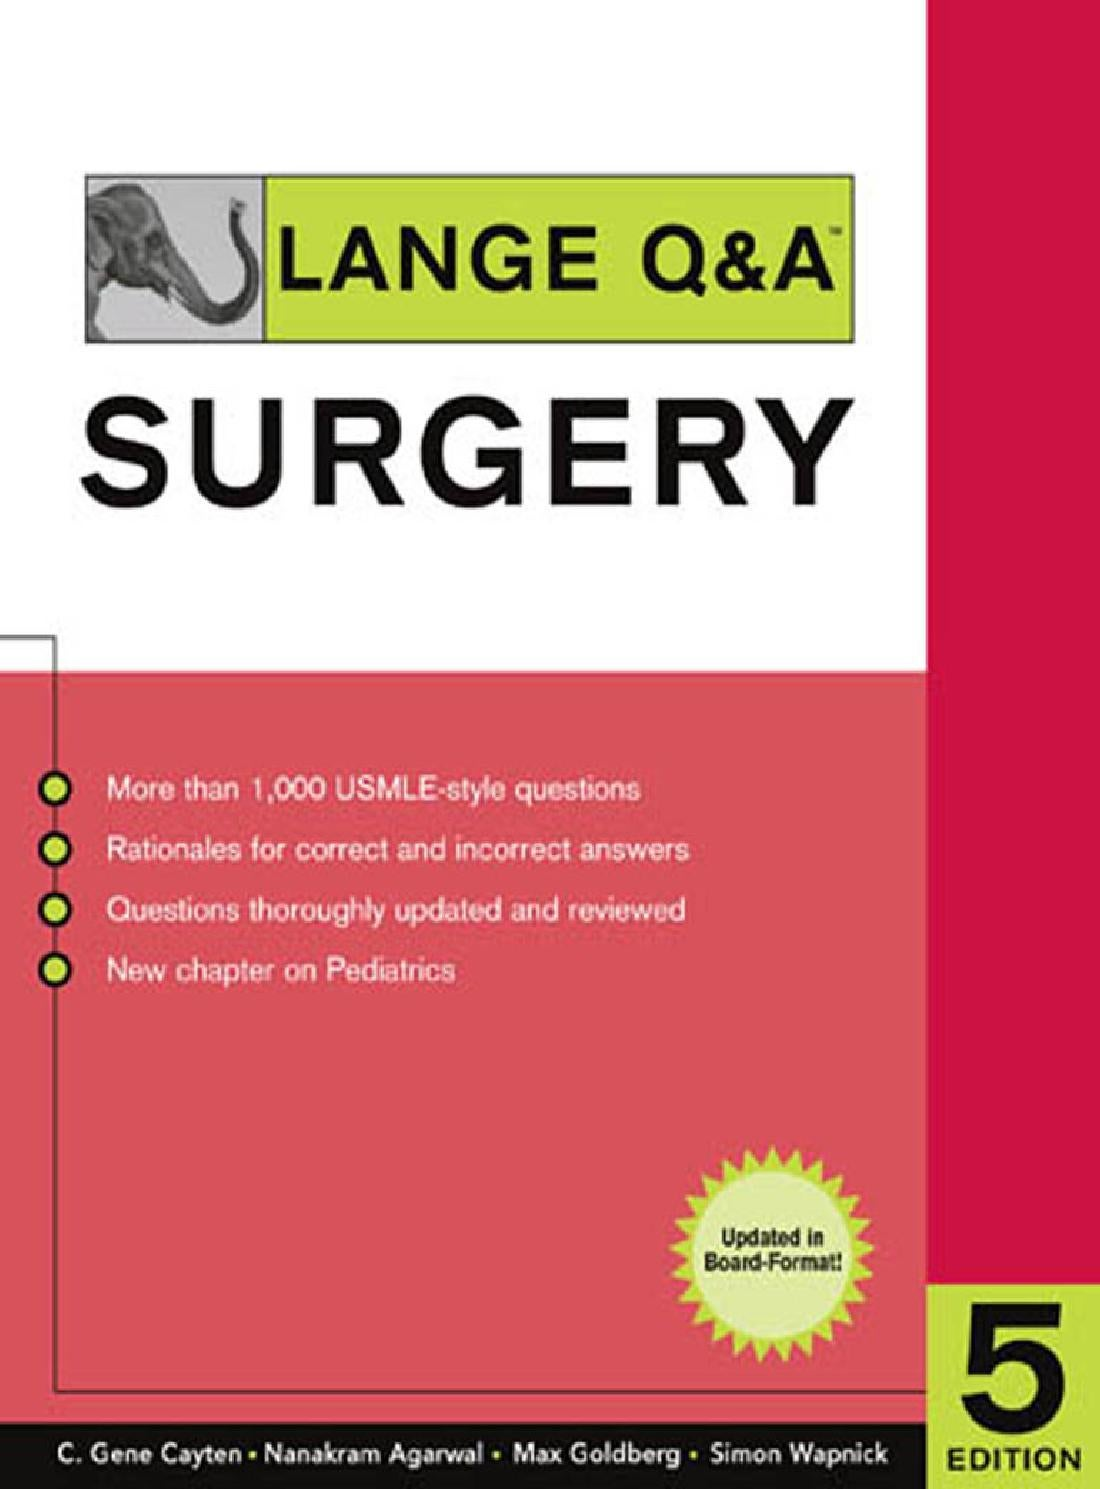 Lange qa surgery mcgraw hill 2007 by tariq hafiz issuu fandeluxe Images